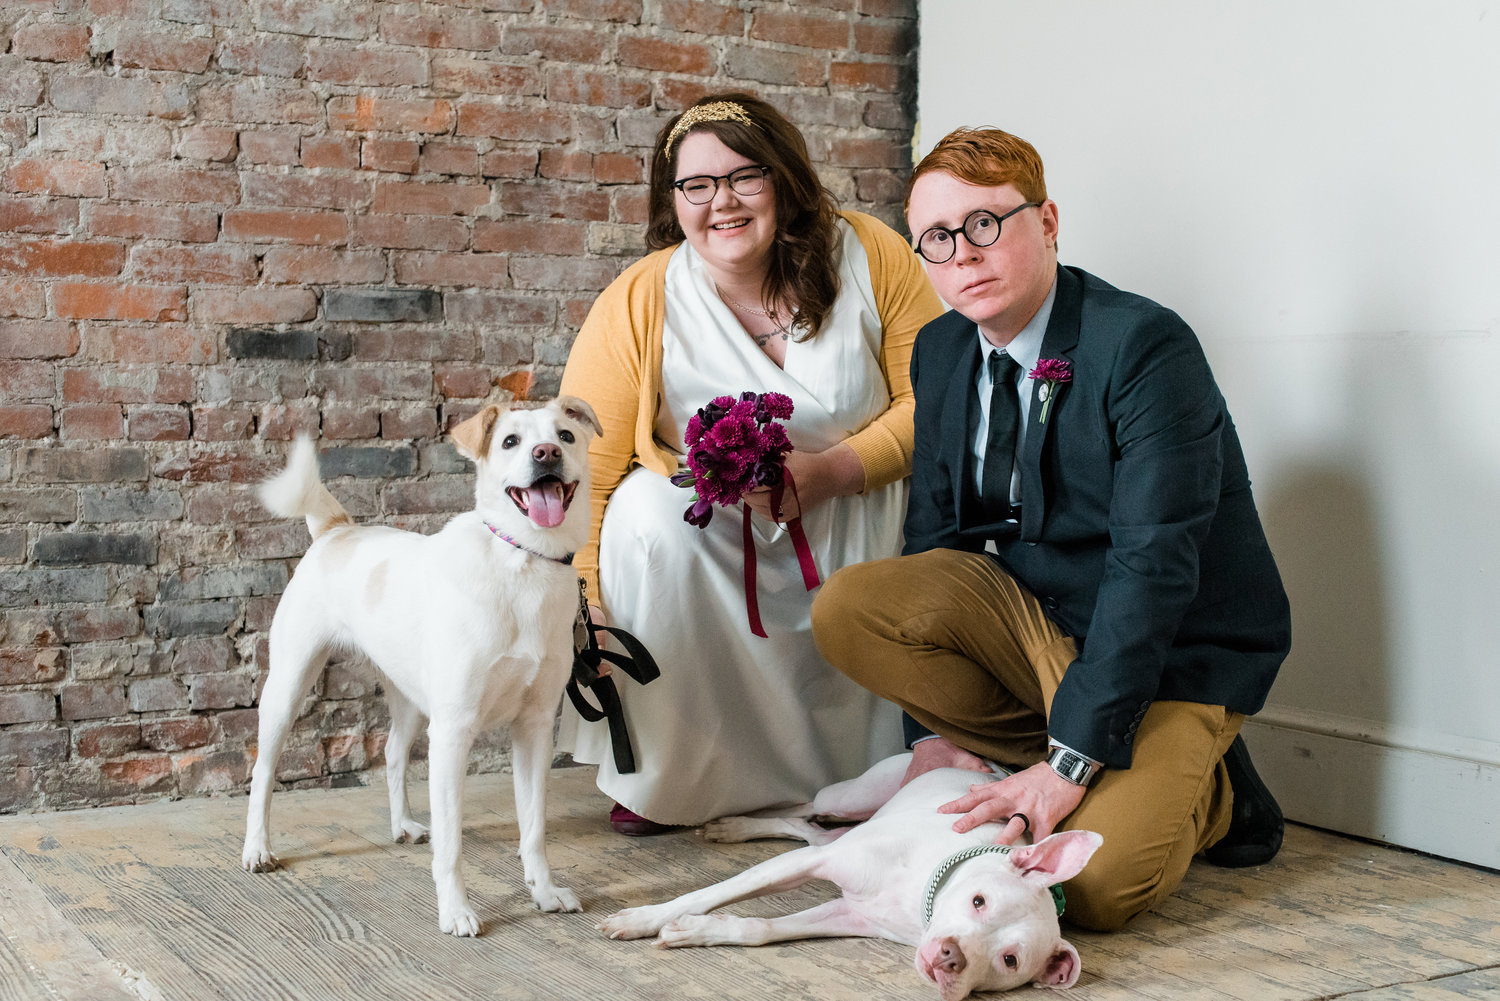 dawn-derbyshire-wedding-photographer-pittsburgh-dogs.jpg